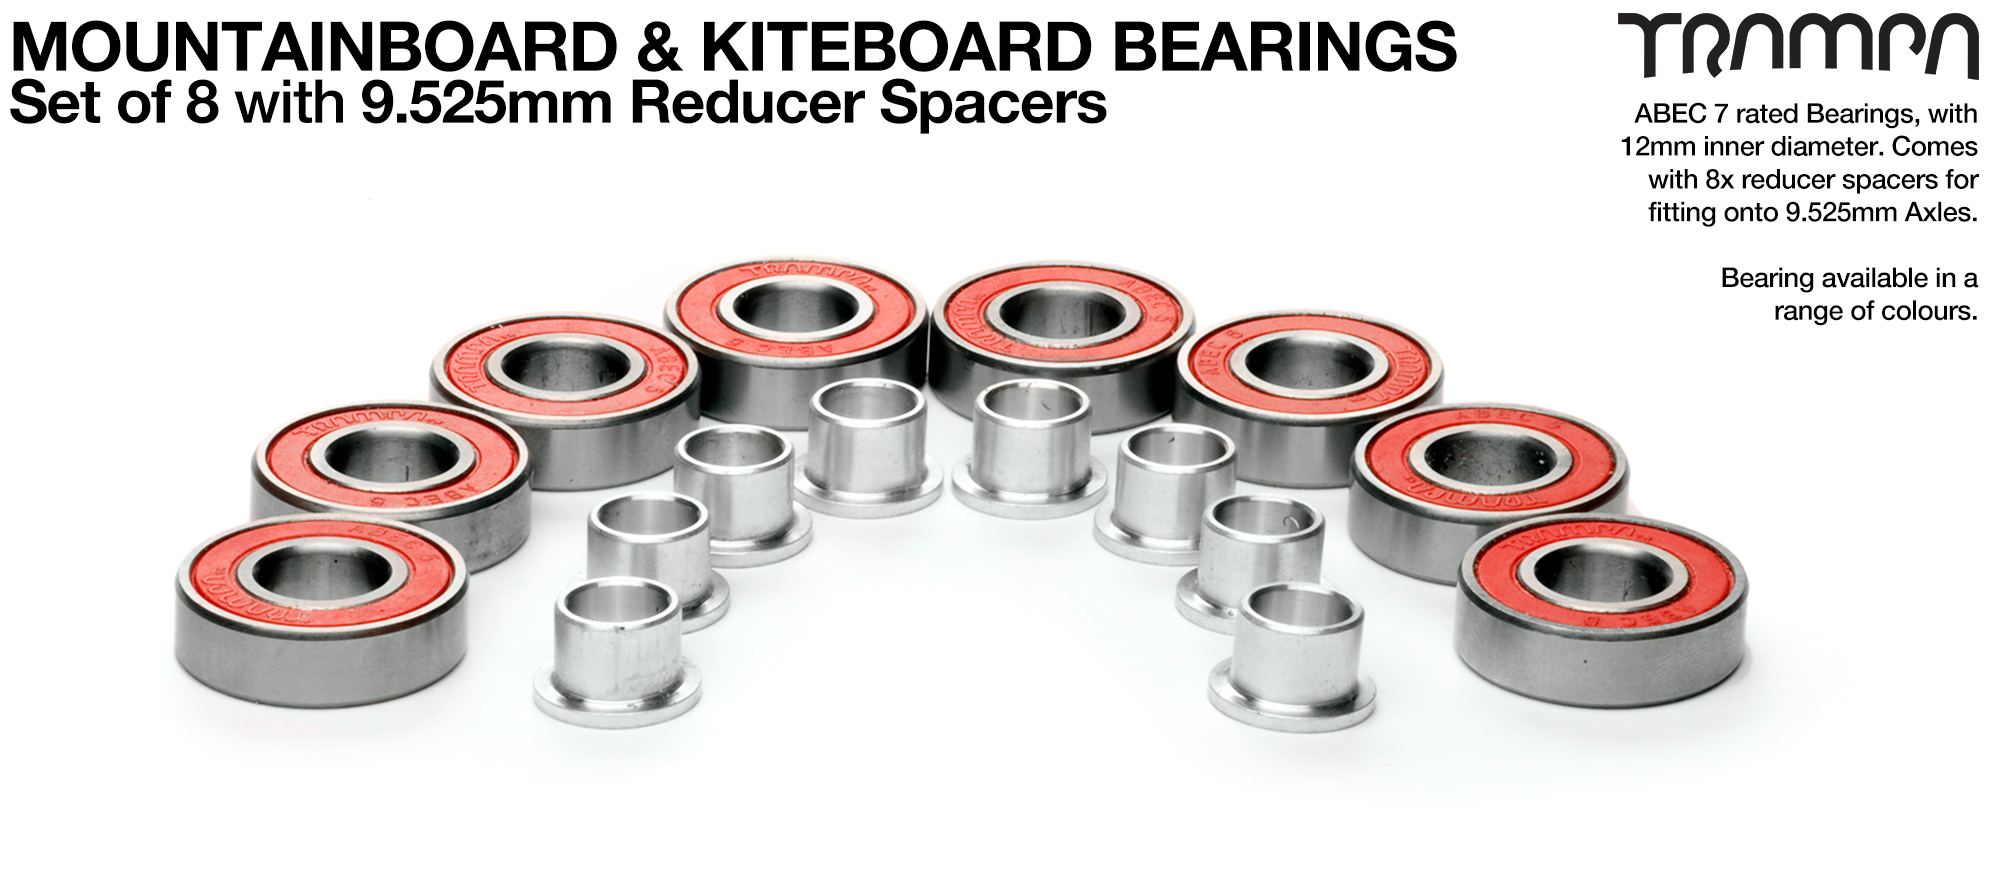 12mm Axle ABEC 7 Rated MTB Bearings with 9.525mm Reducer Spacers